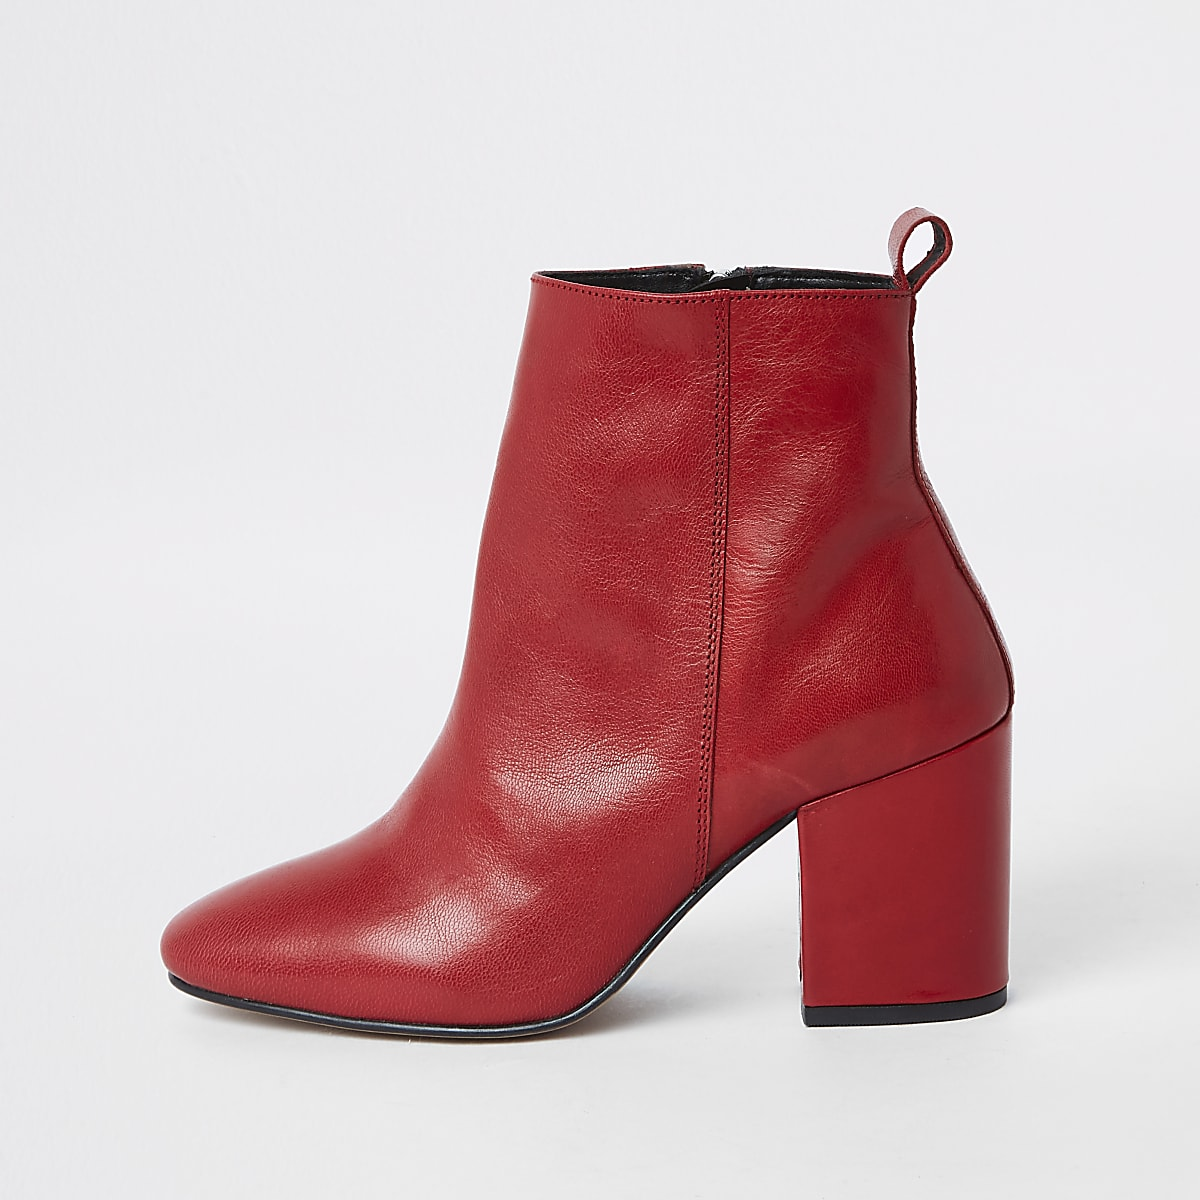 527508feb53e Red leather block heel ankle boots - Boots - Shoes   Boots - women